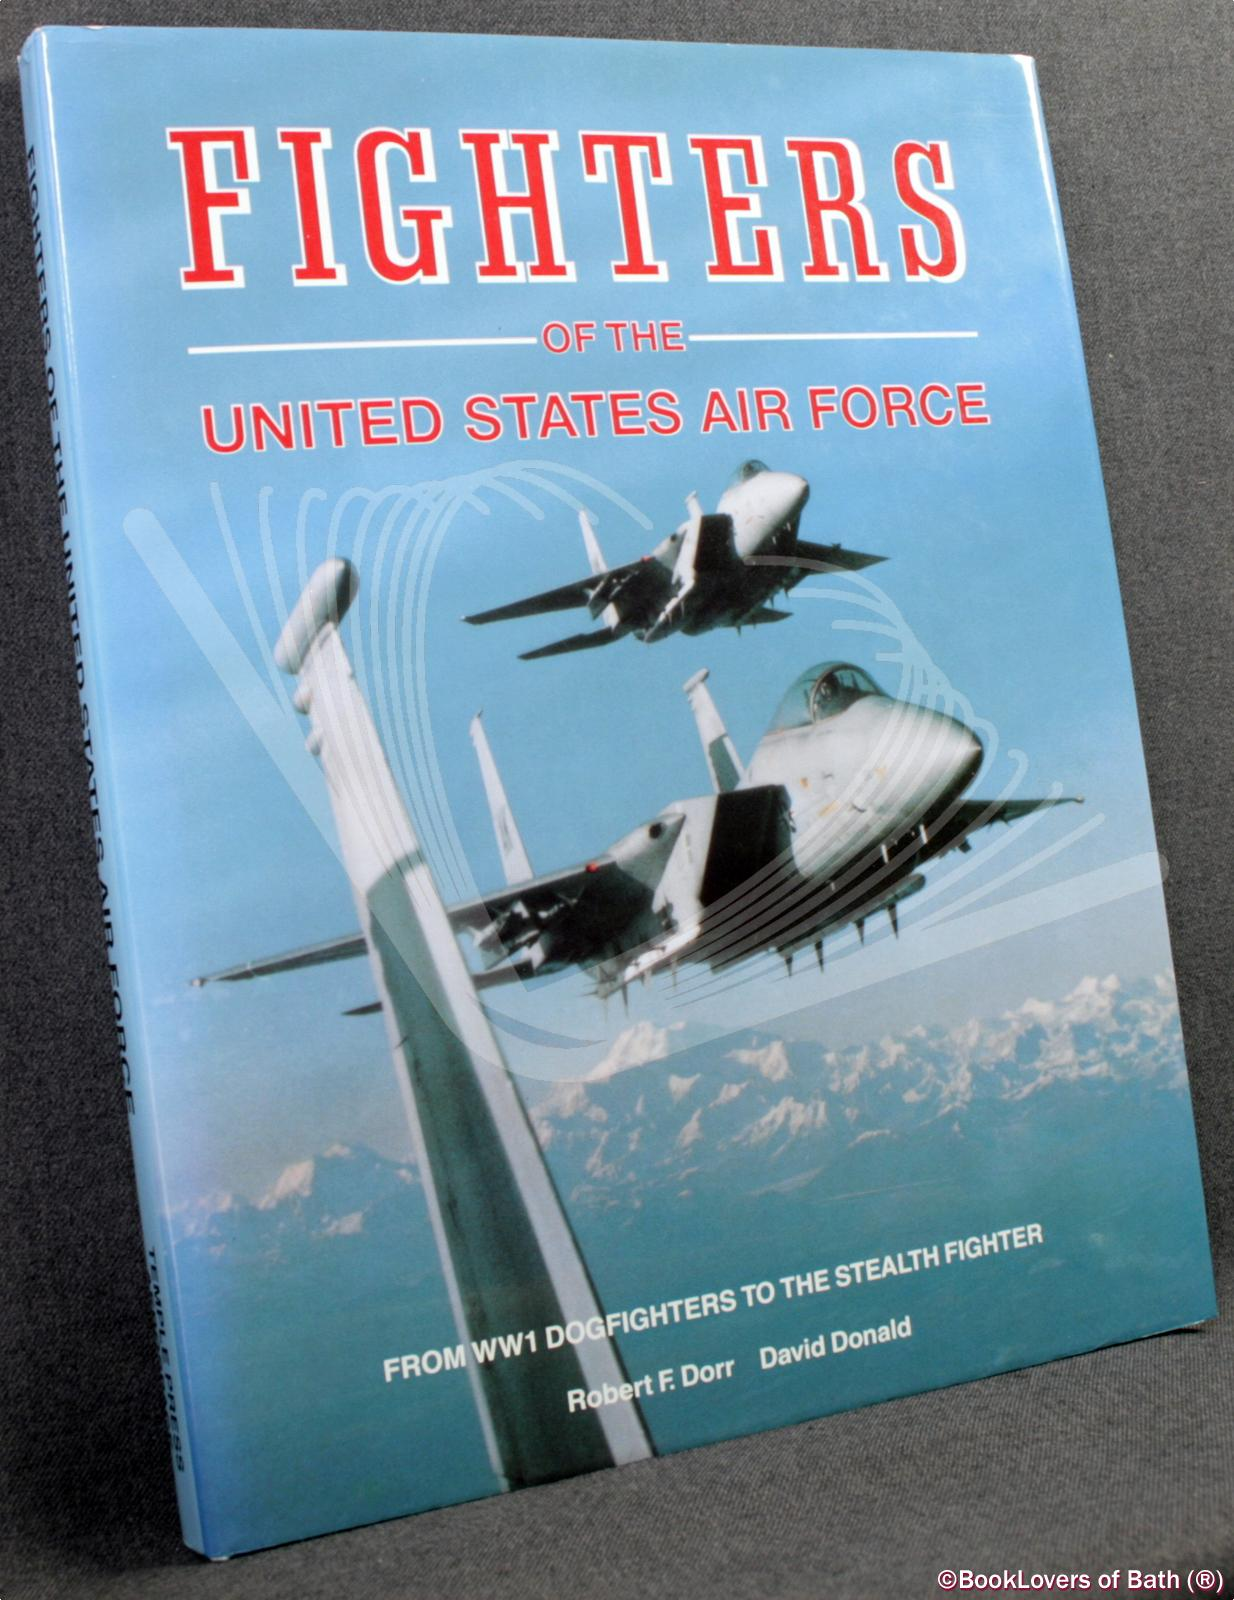 Fighters of the United States Air Force: From World War I Pursuits to the F-117 - Robert F. Dorr & David Donald